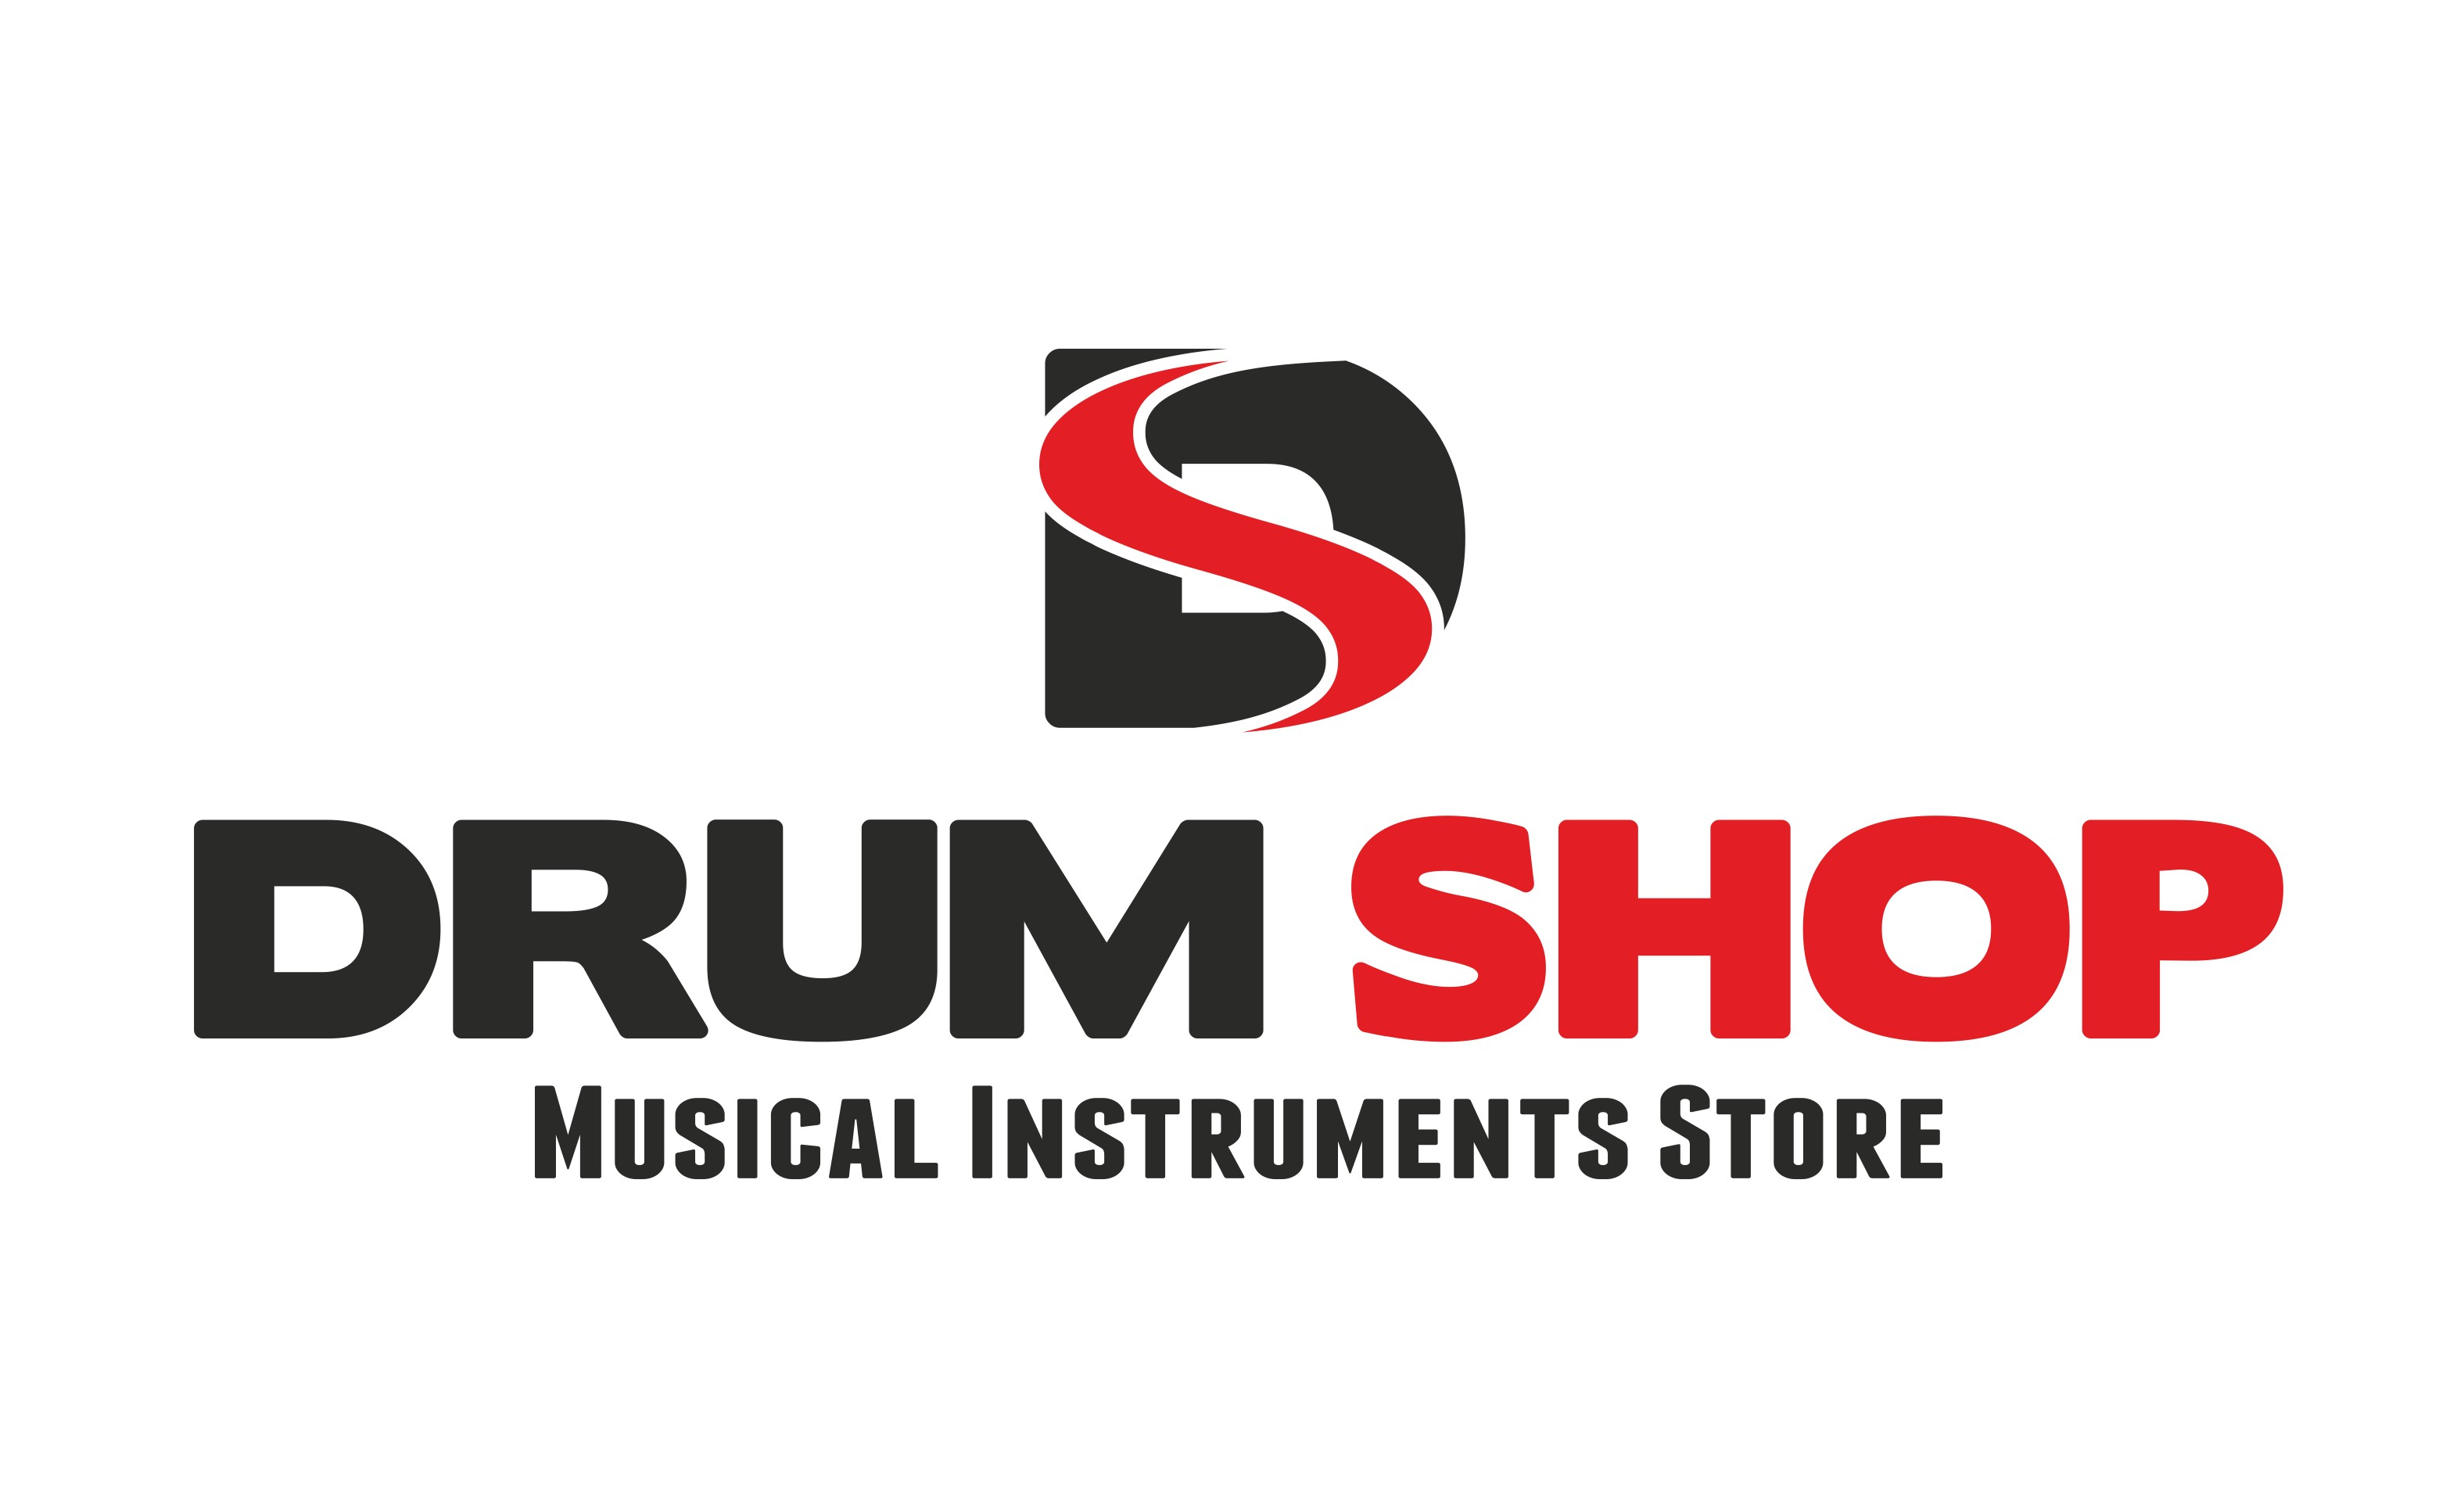 DRUM SHOP MUSICAL INSTRUMENT STORE